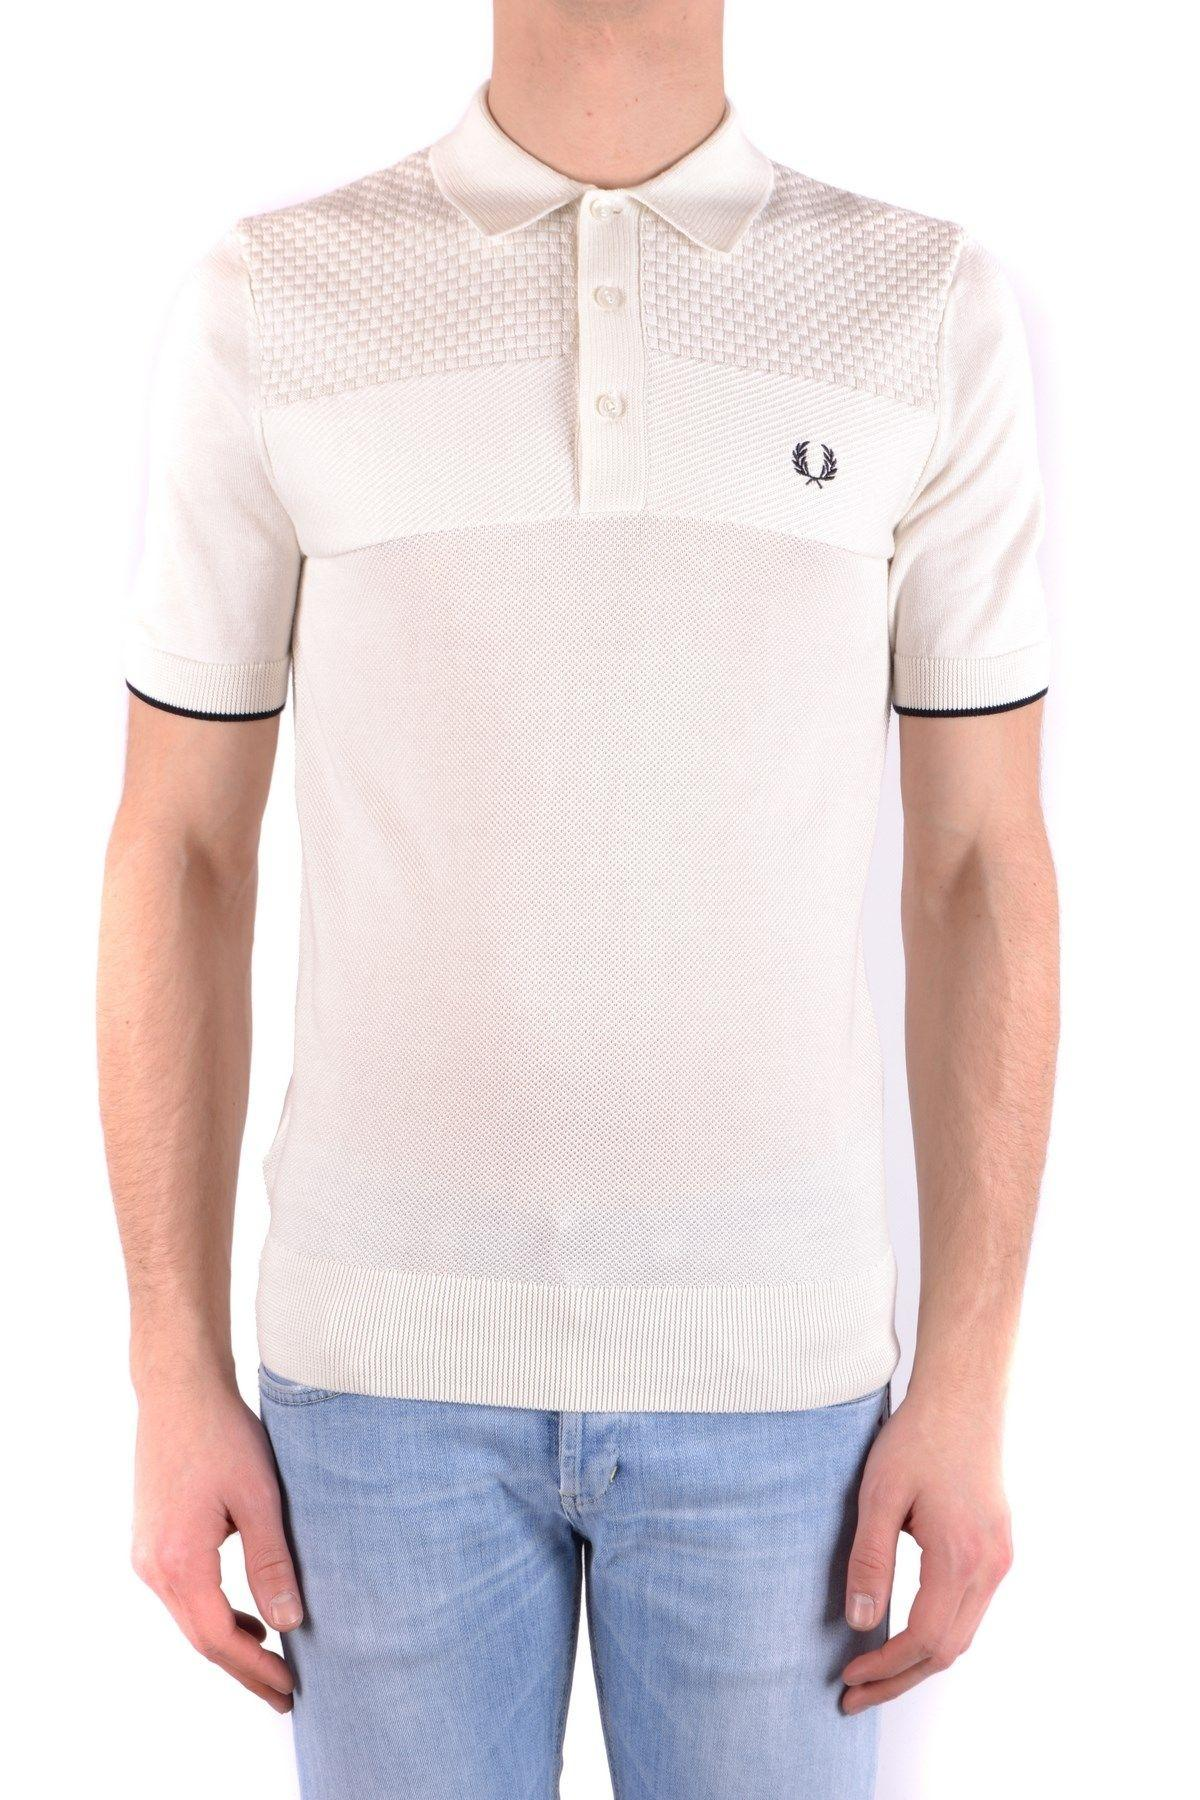 Fred Perry White Polo Shirt in White for Men - Lyst